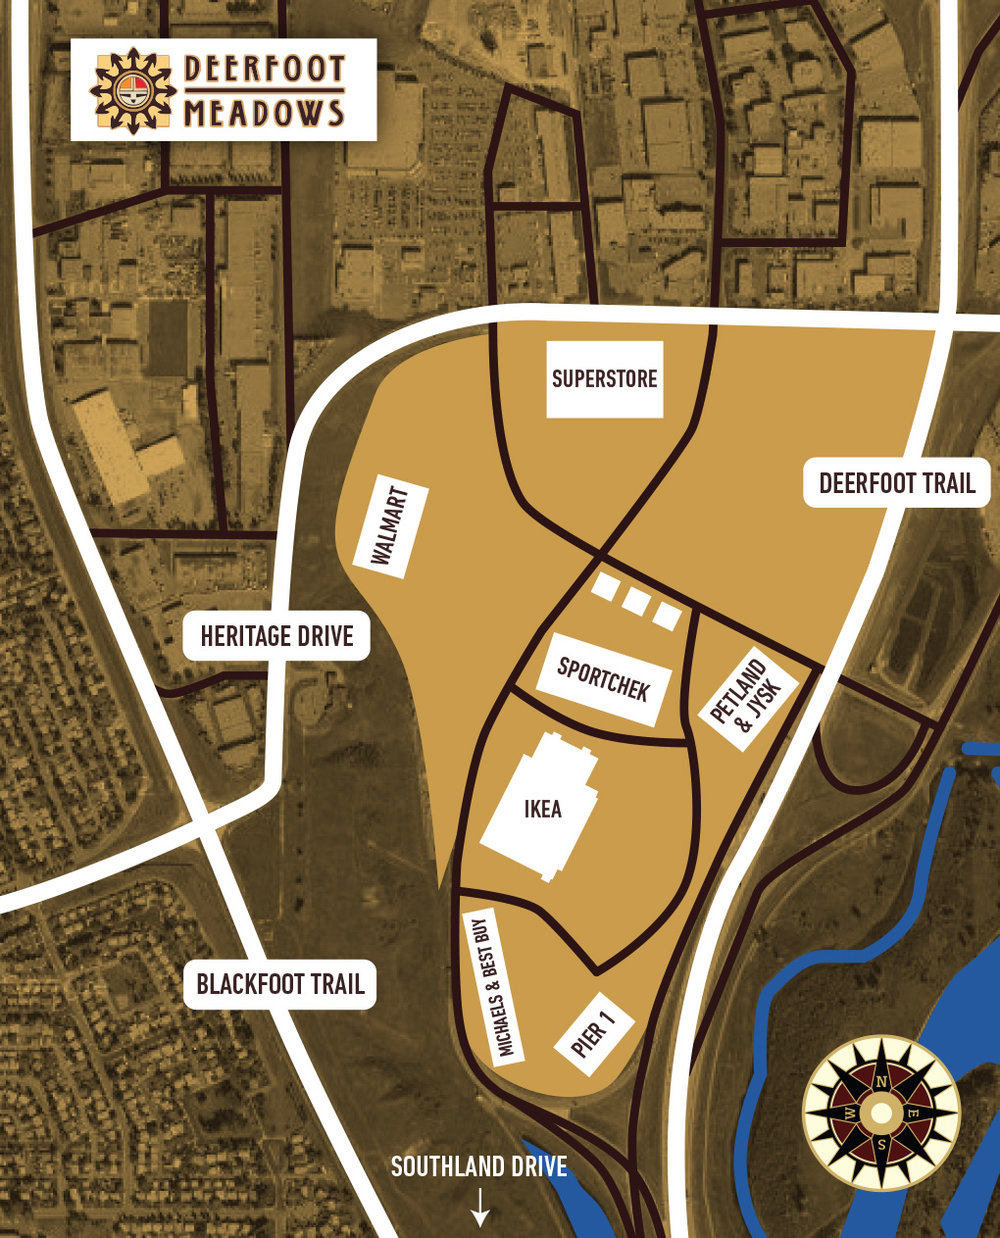 deerfoot-meadows-site-map-l.jpg